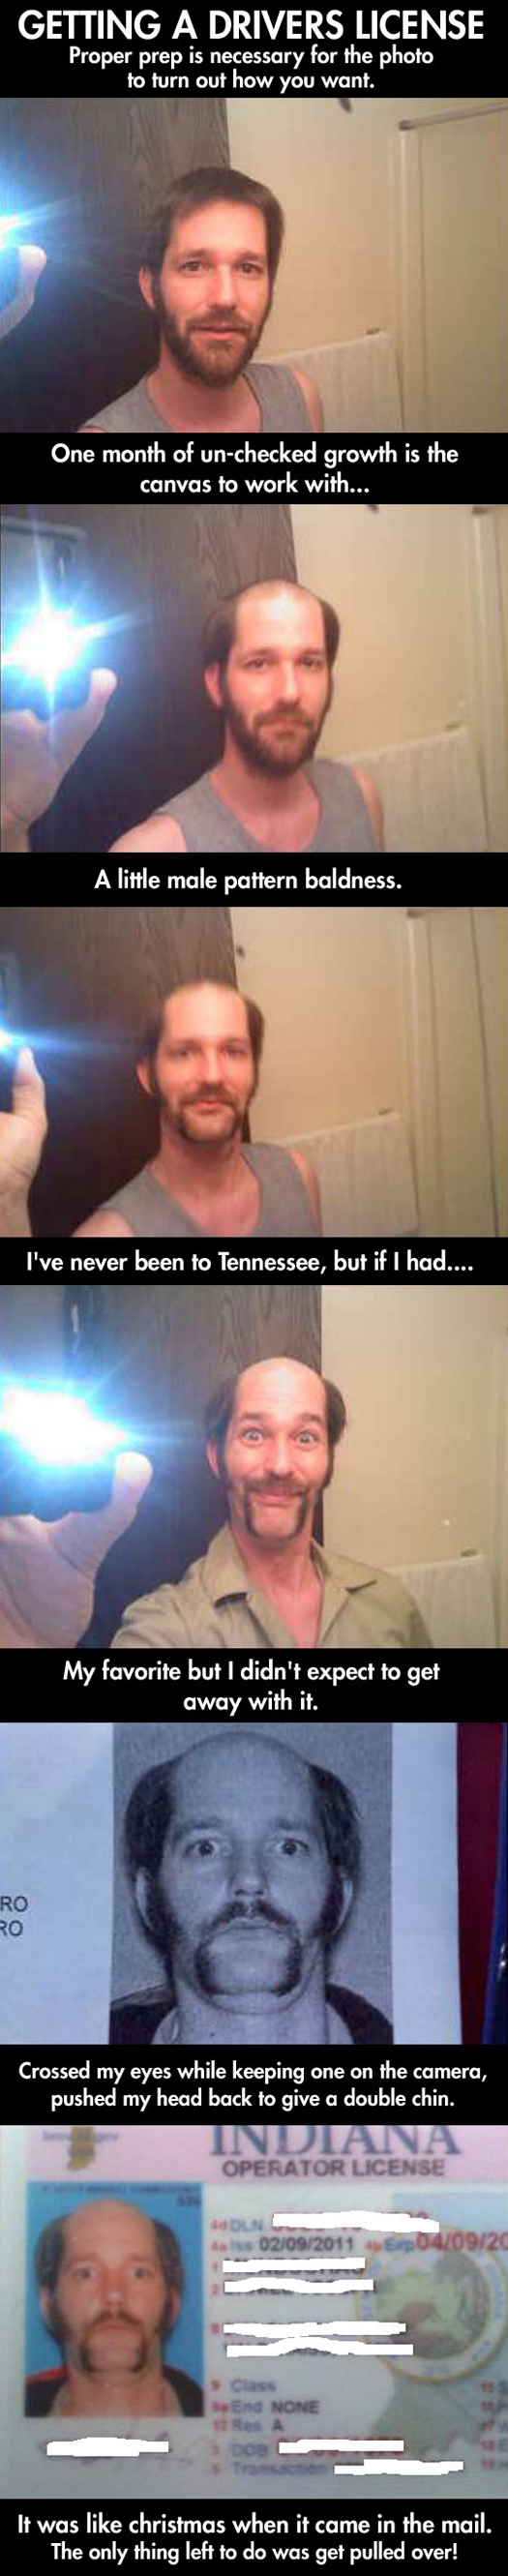 guy makes himself look funny for license picture